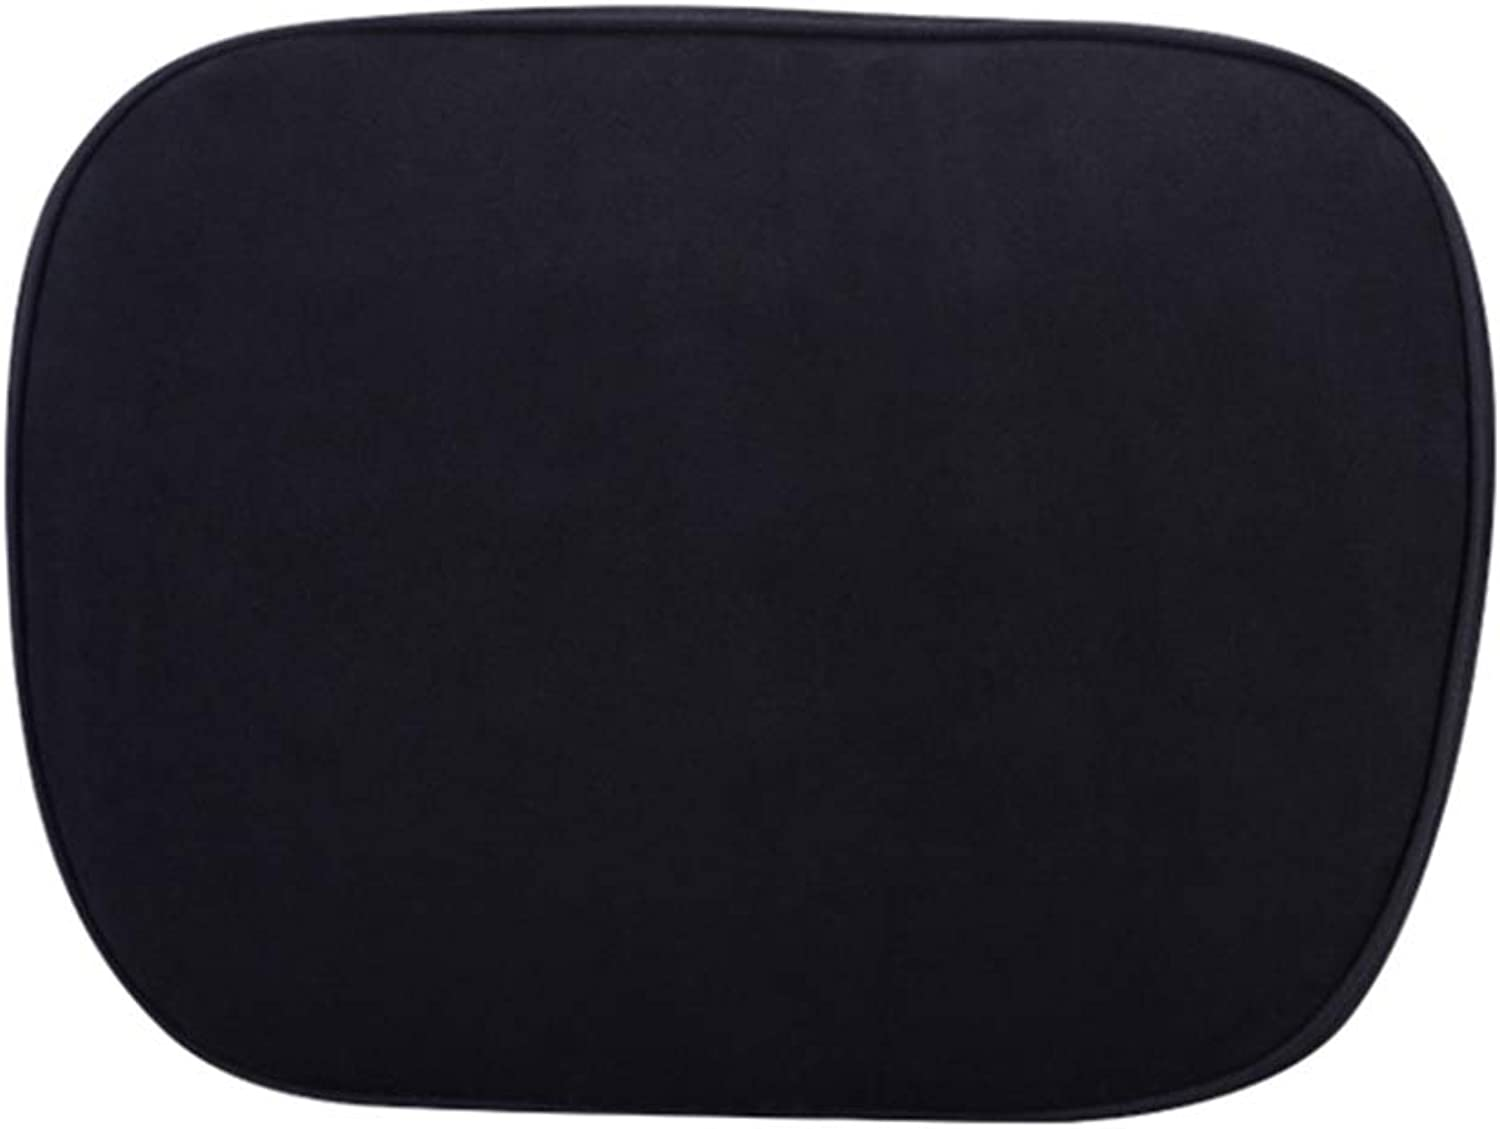 Back Cushion Lumbar Support Pillow Ergonomic Back Support Car Memory Foam Neck Predection Four Seasons GAOFENG (color   Black, Size   Headrest)